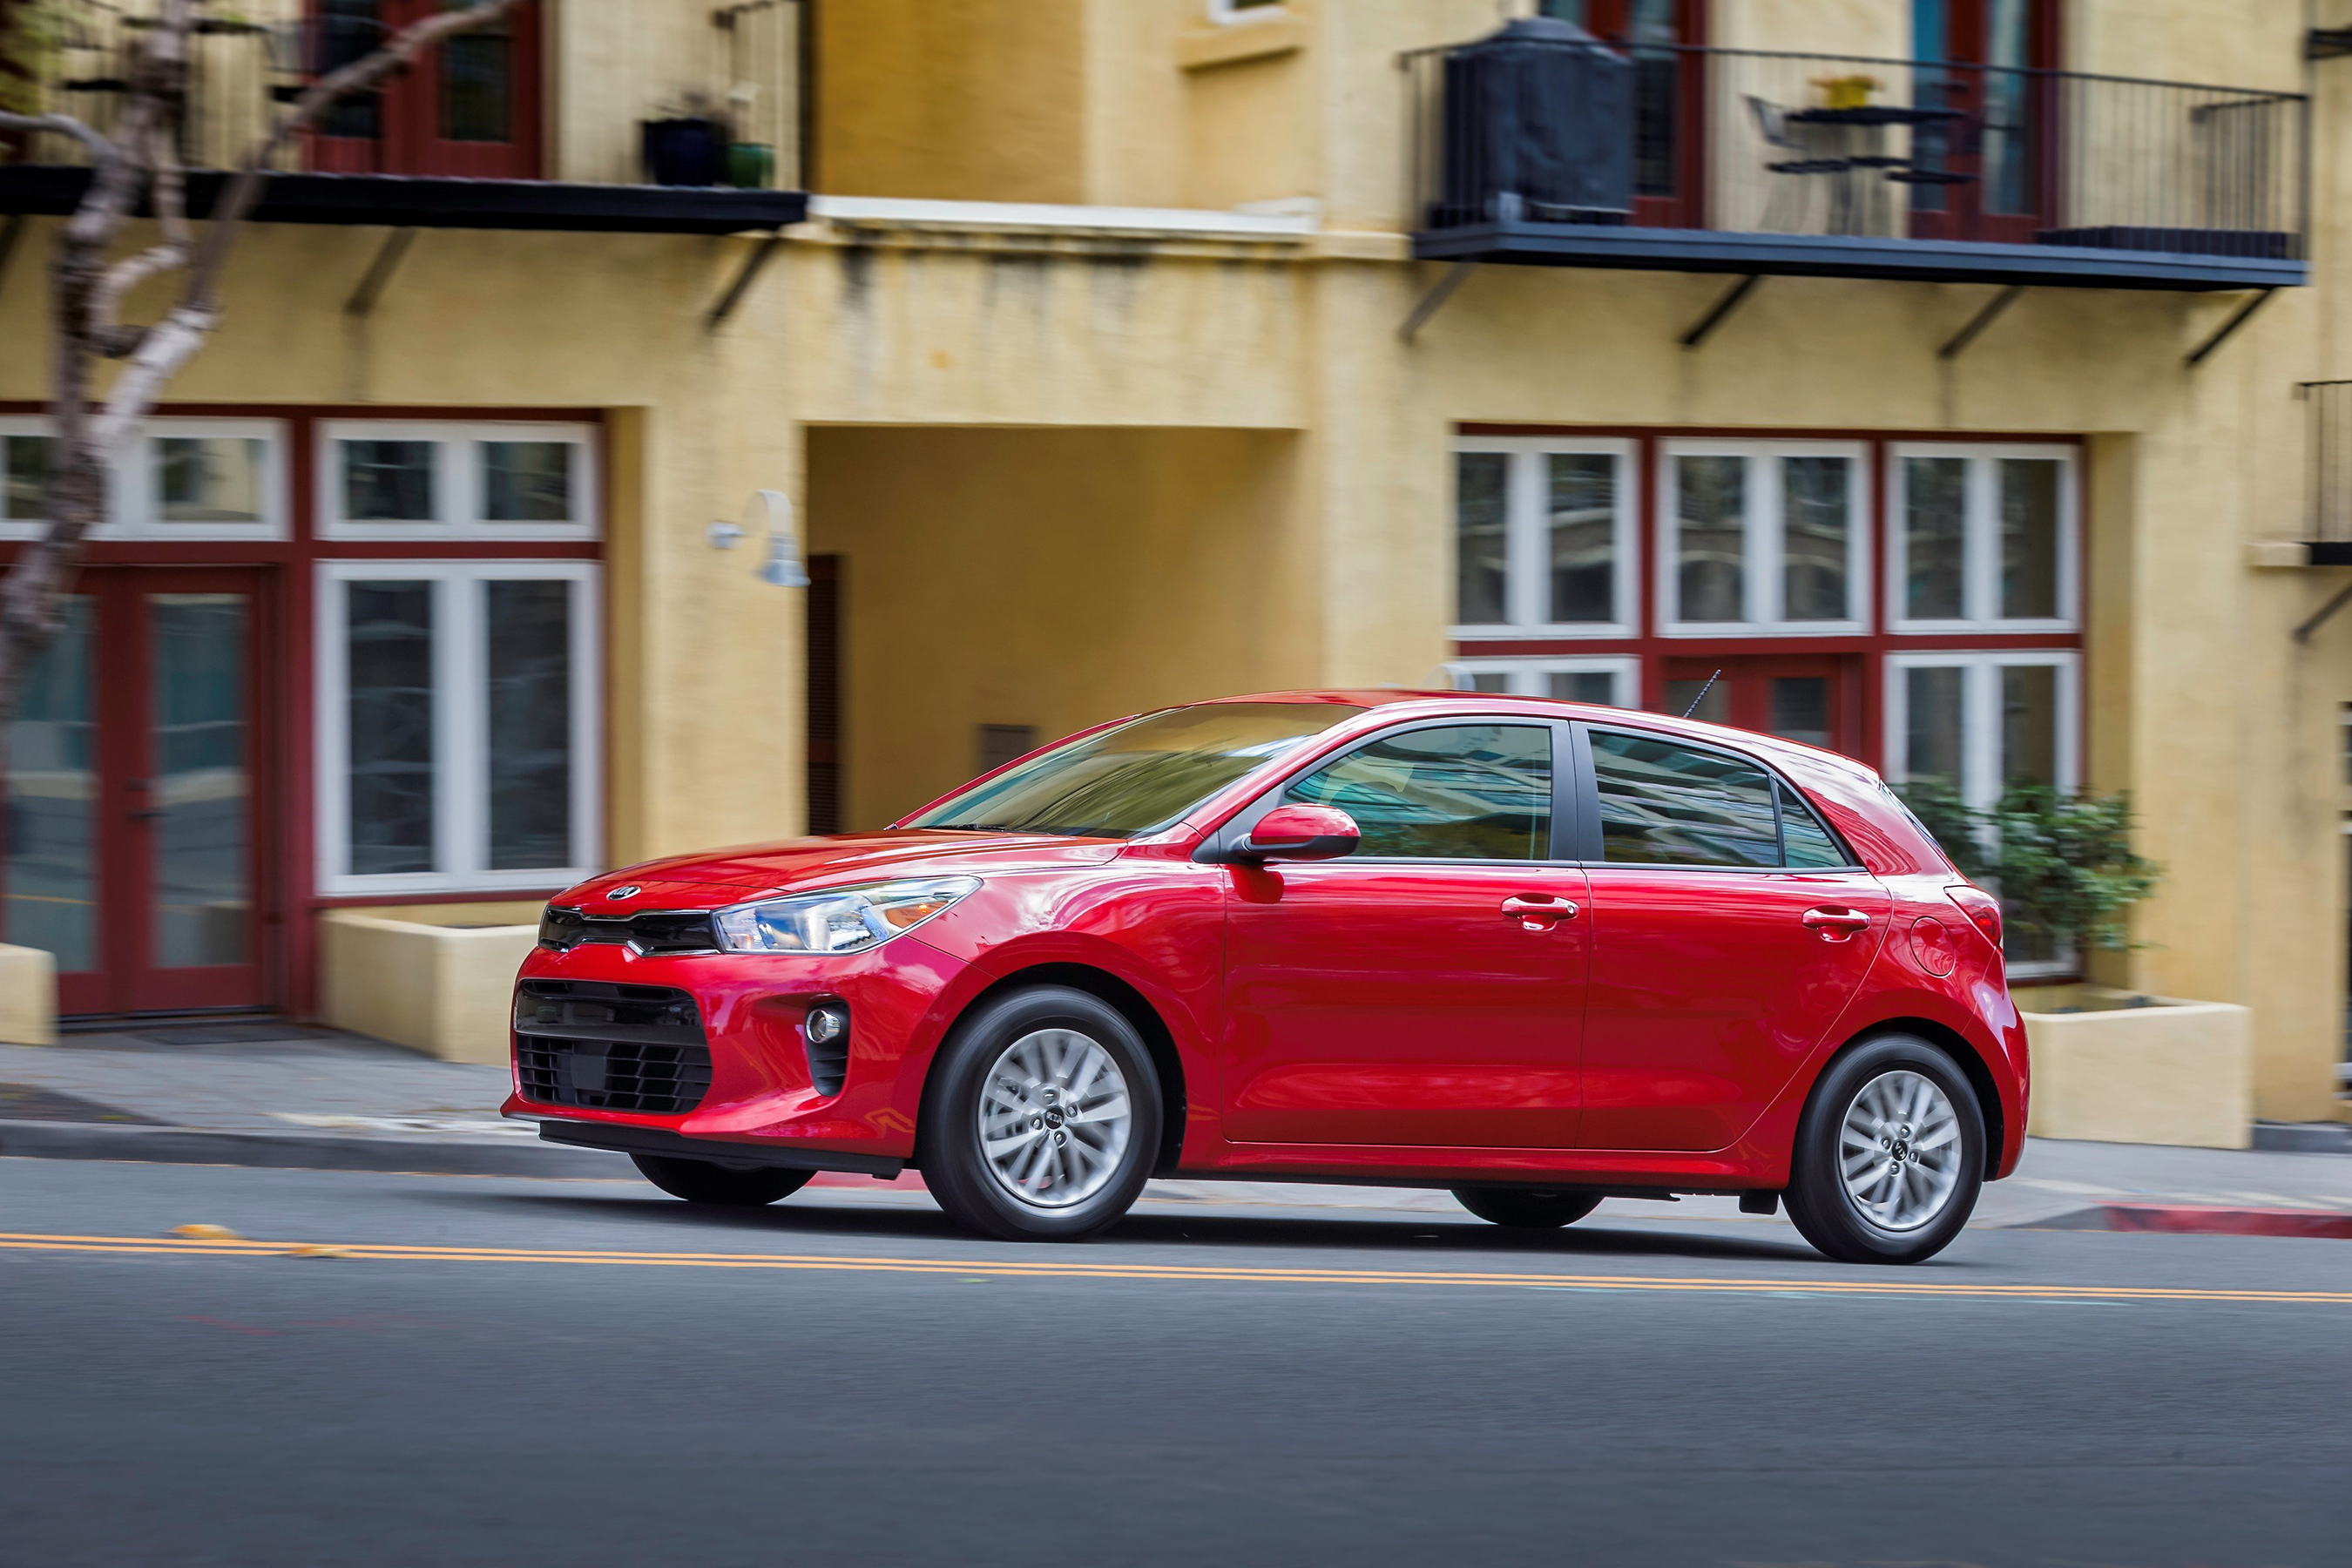 All-new 2018 Kia Rio subcompacts will bring an exciting combination of impressive fuel efficiency, advanced safety features, everyday convenience and fun-to-drive character.